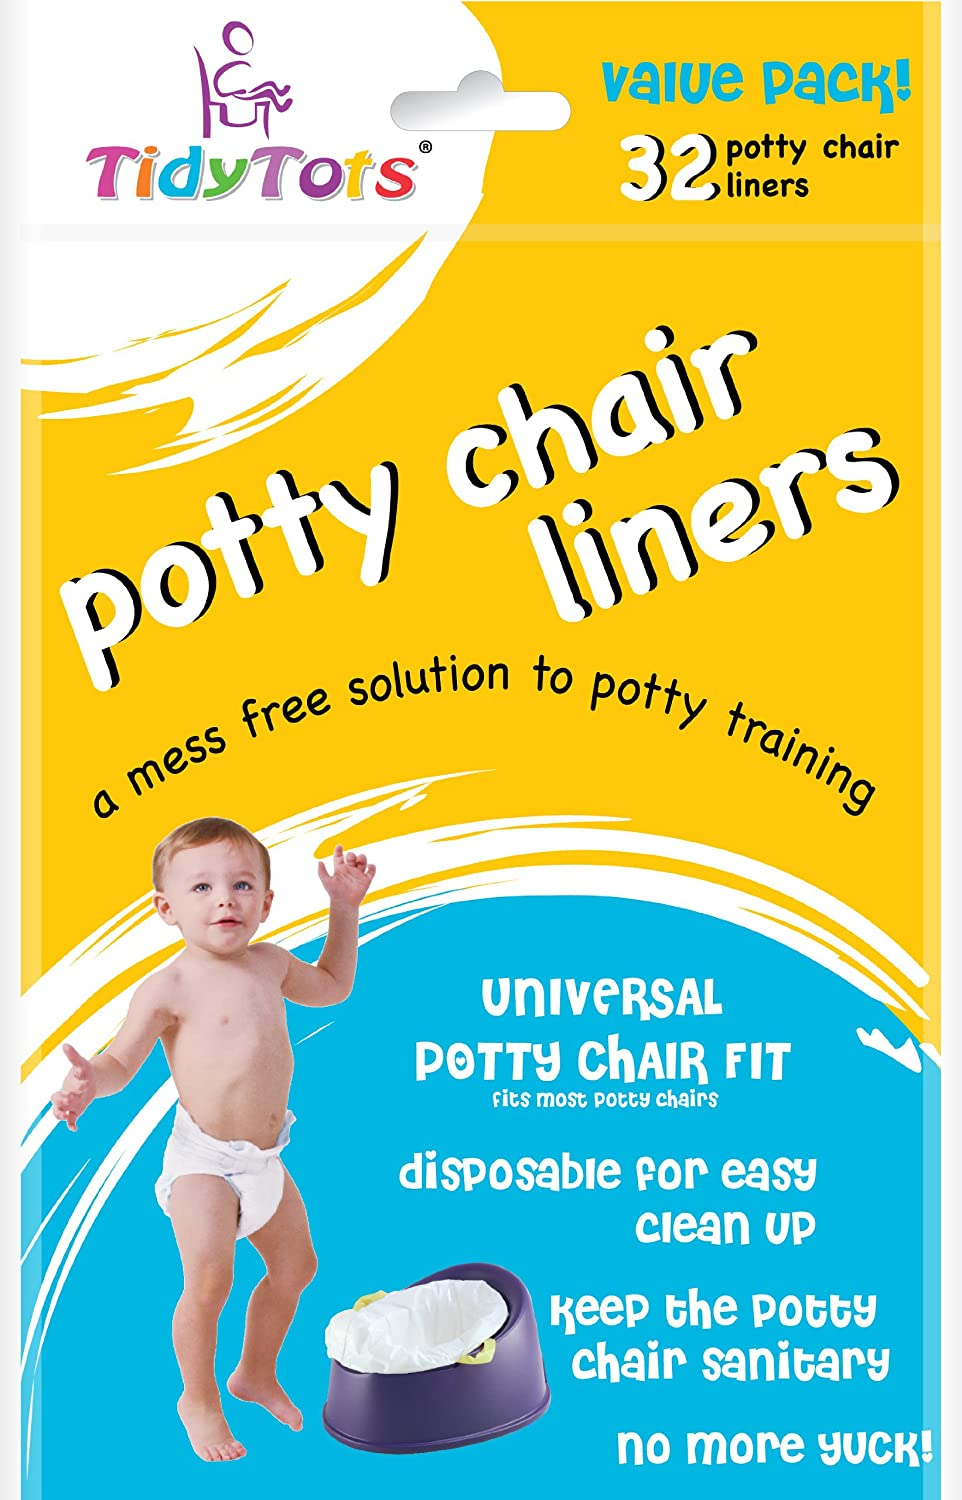 TidyTots Disposable Potty Chair Liners - Value Pack - Universal Potty Chair Fit (fits most potty chairs) - 32 Liners Tidy Tots TT-002